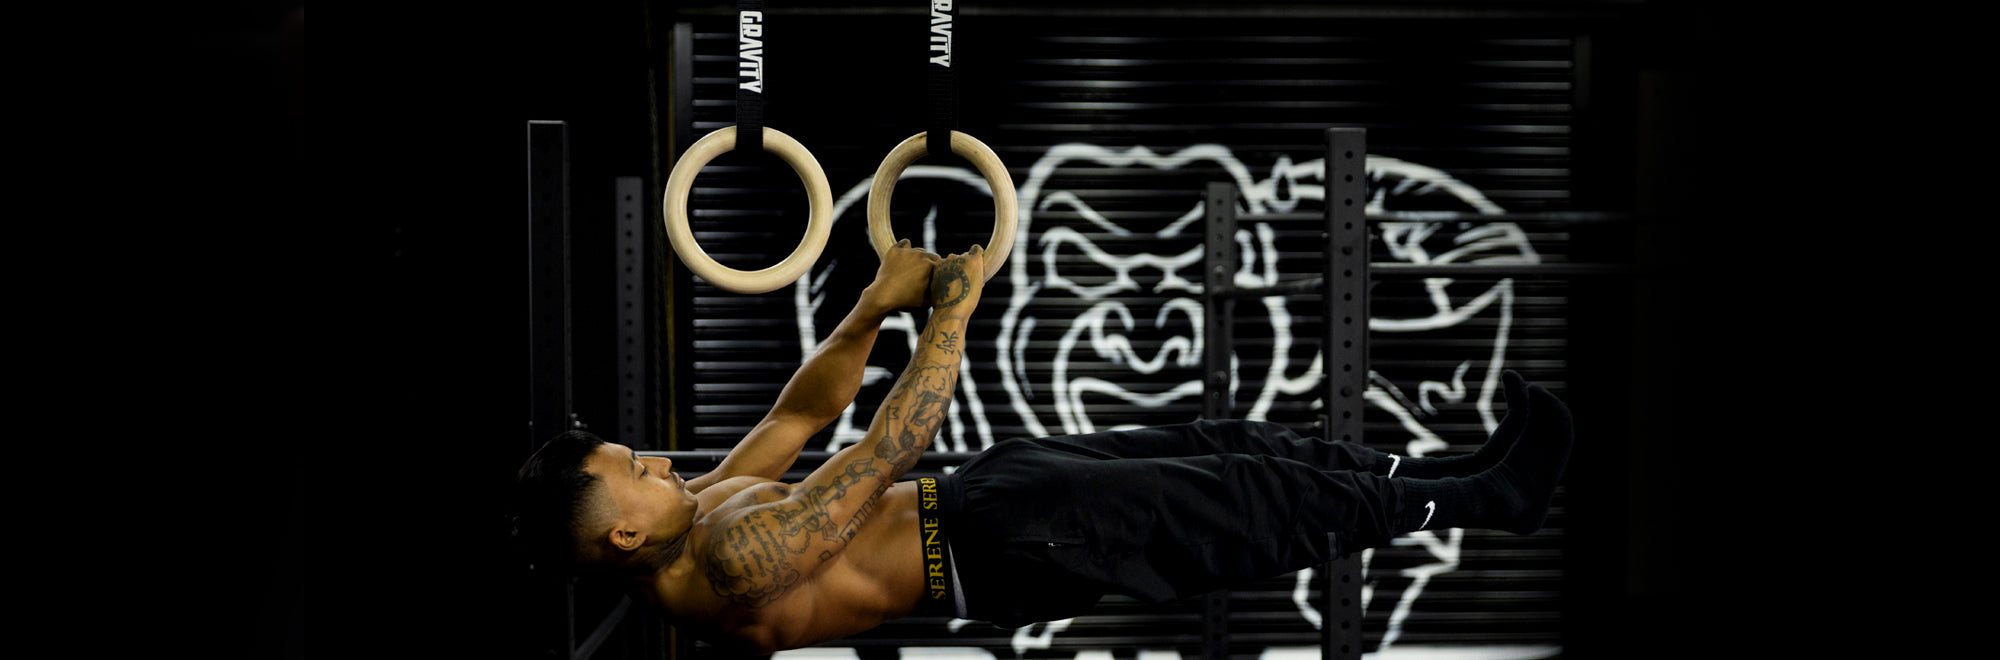 Advanced Calisthenics Training With Gymnastics Rings